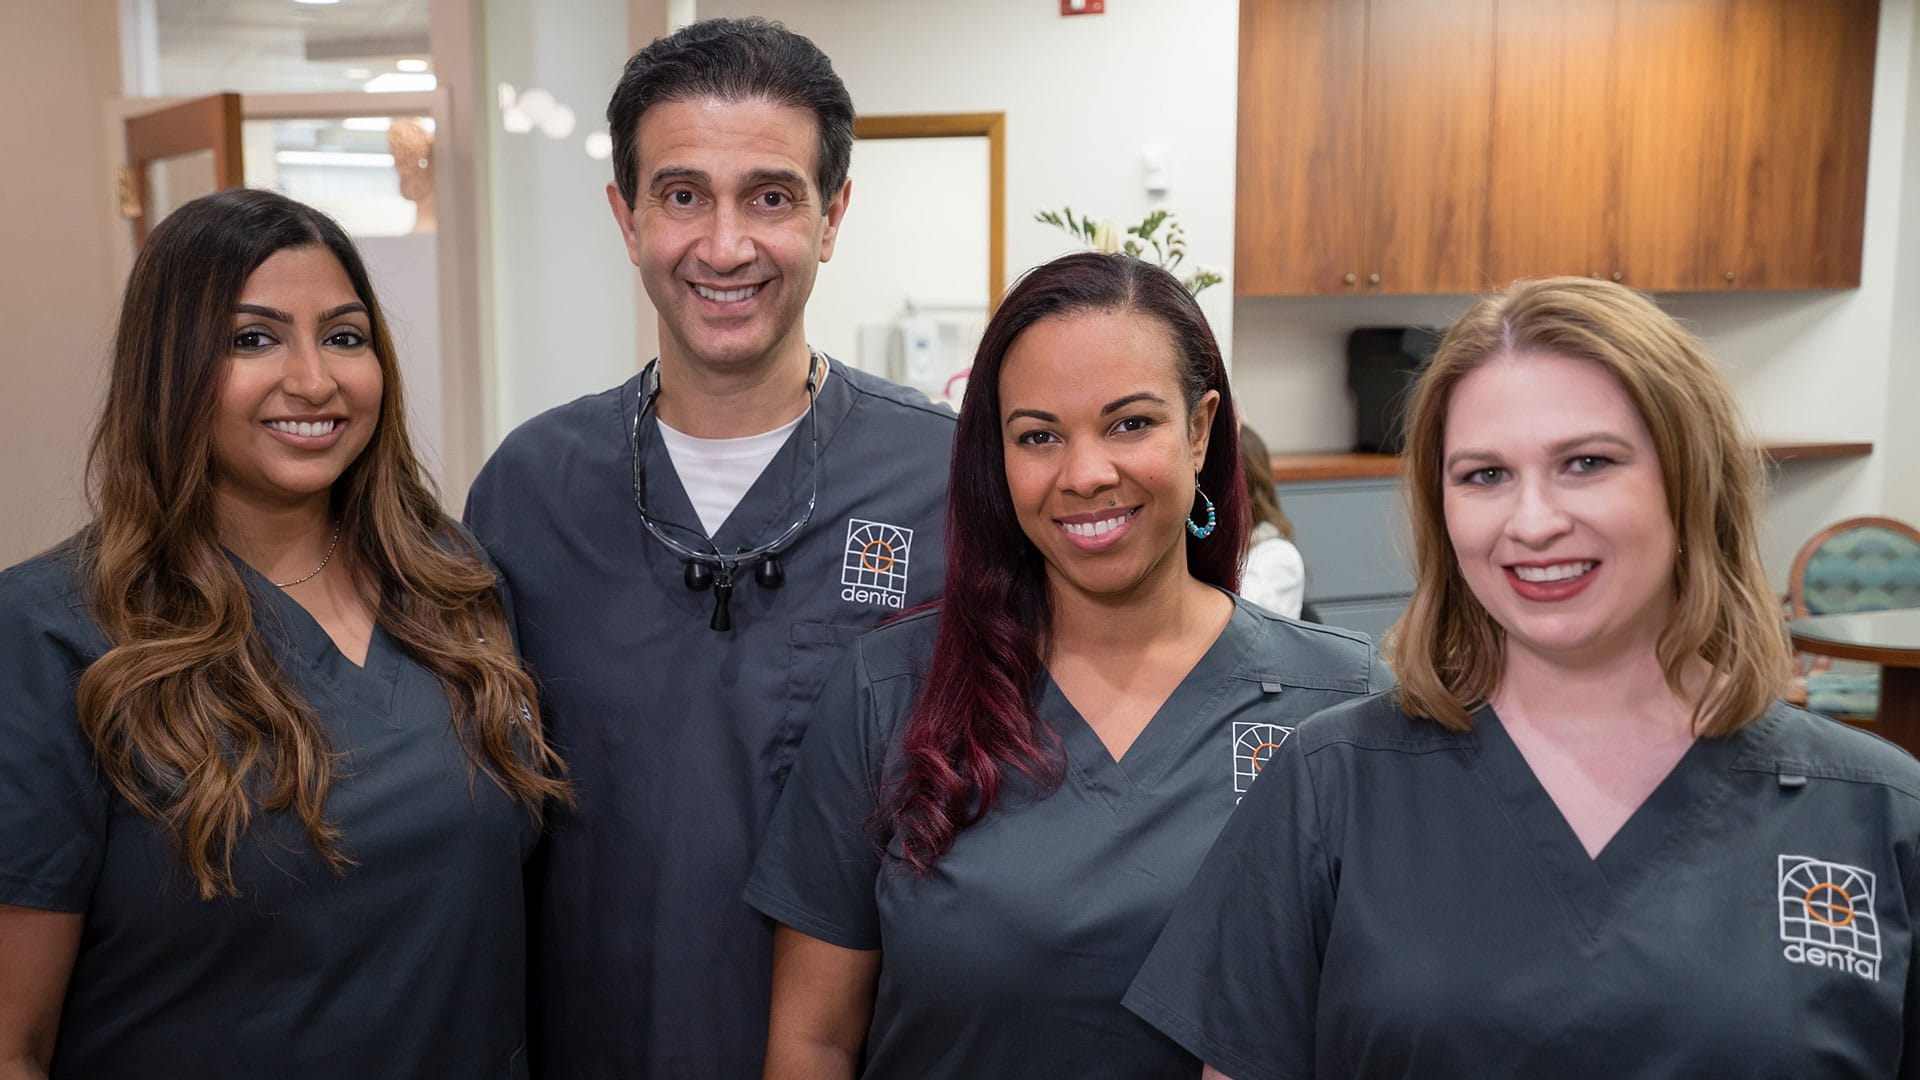 Restorative Dentistry Team in Midtown NYC